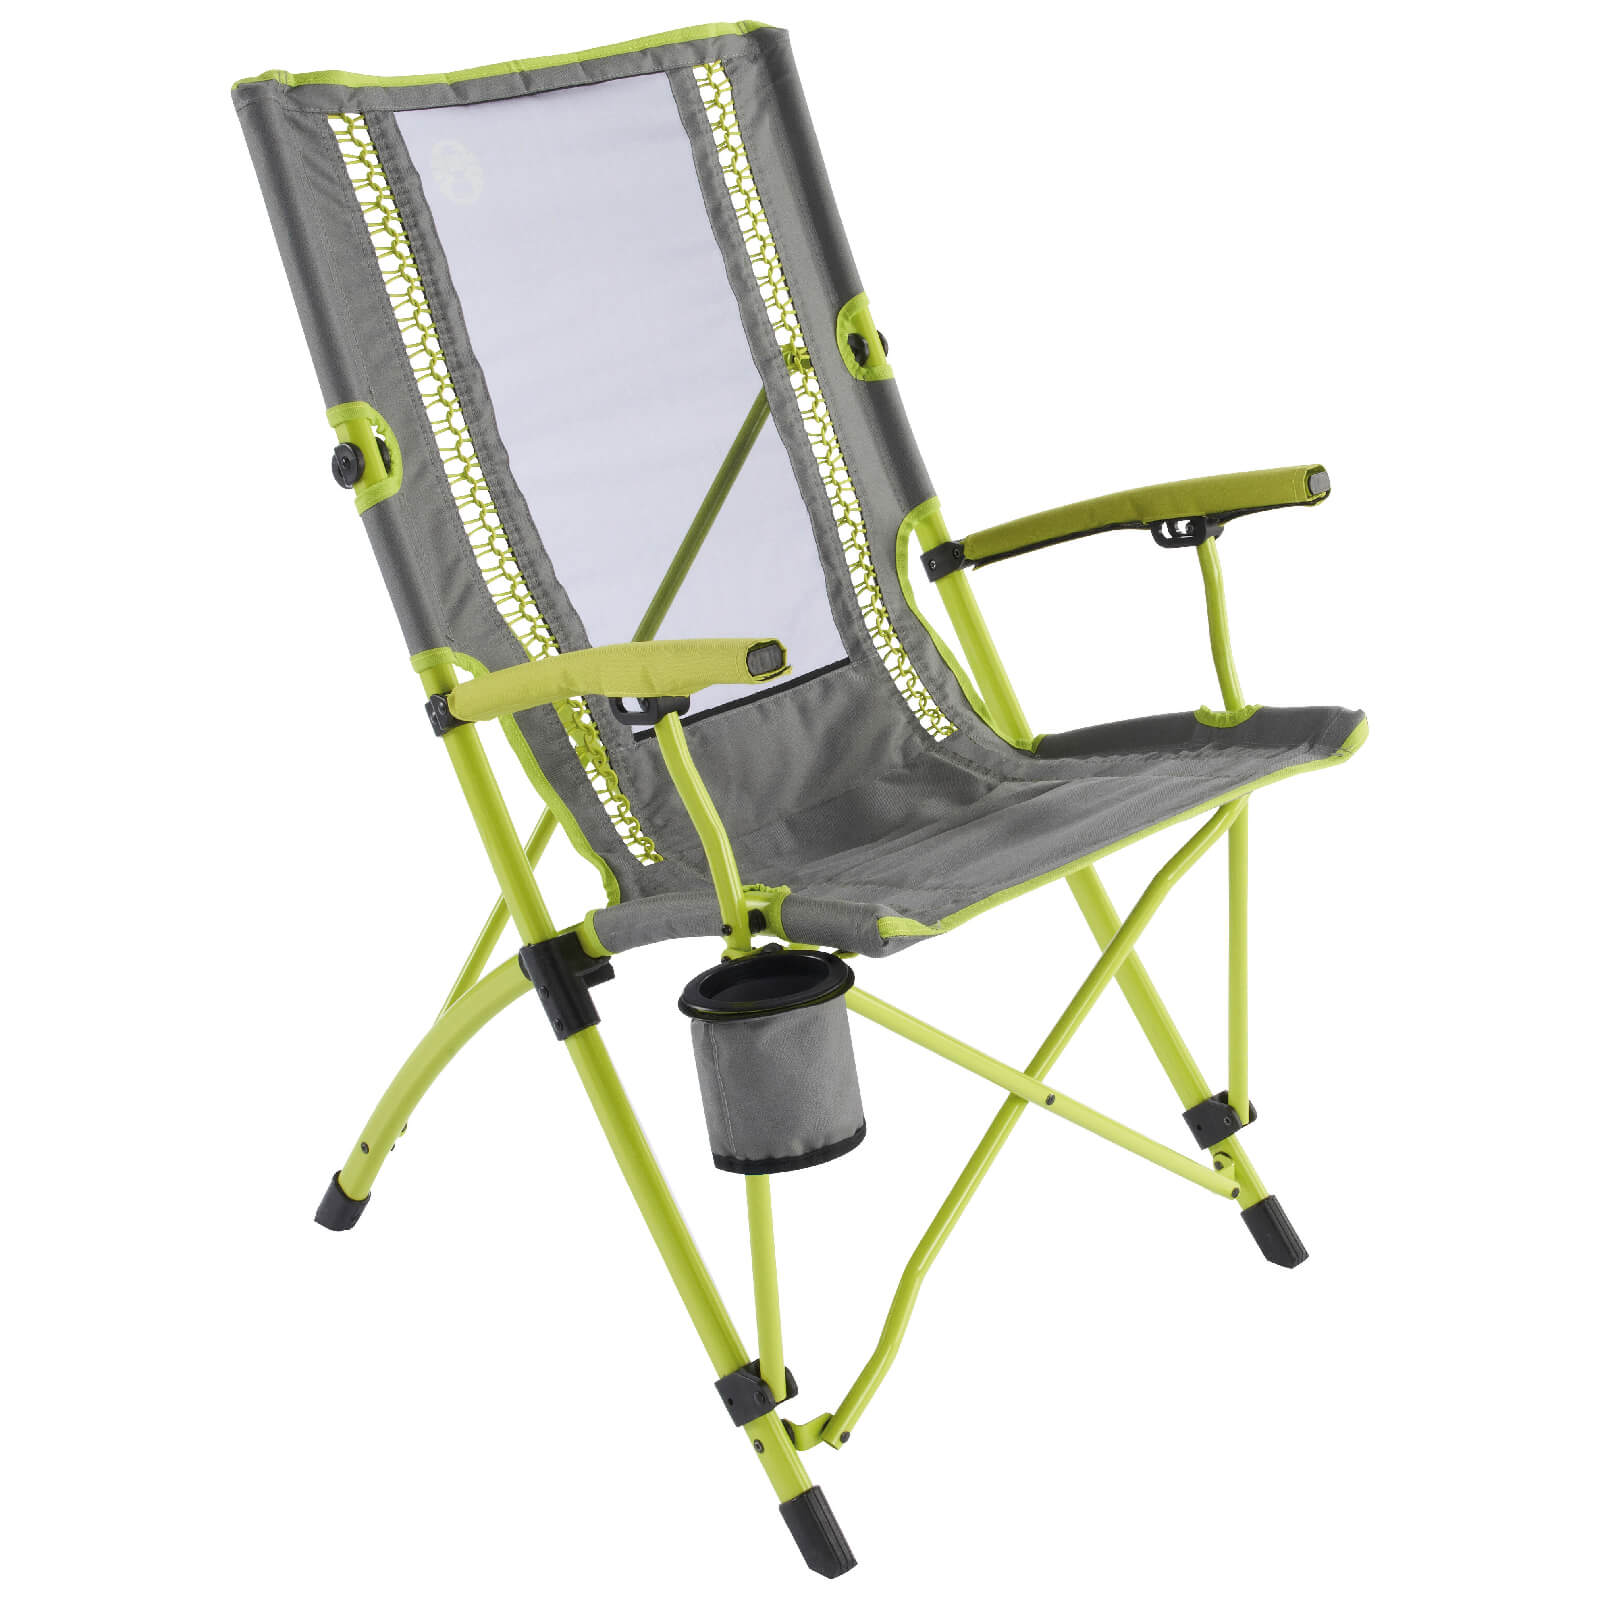 Coleman Bungee Interlock Sling Chair - Lime